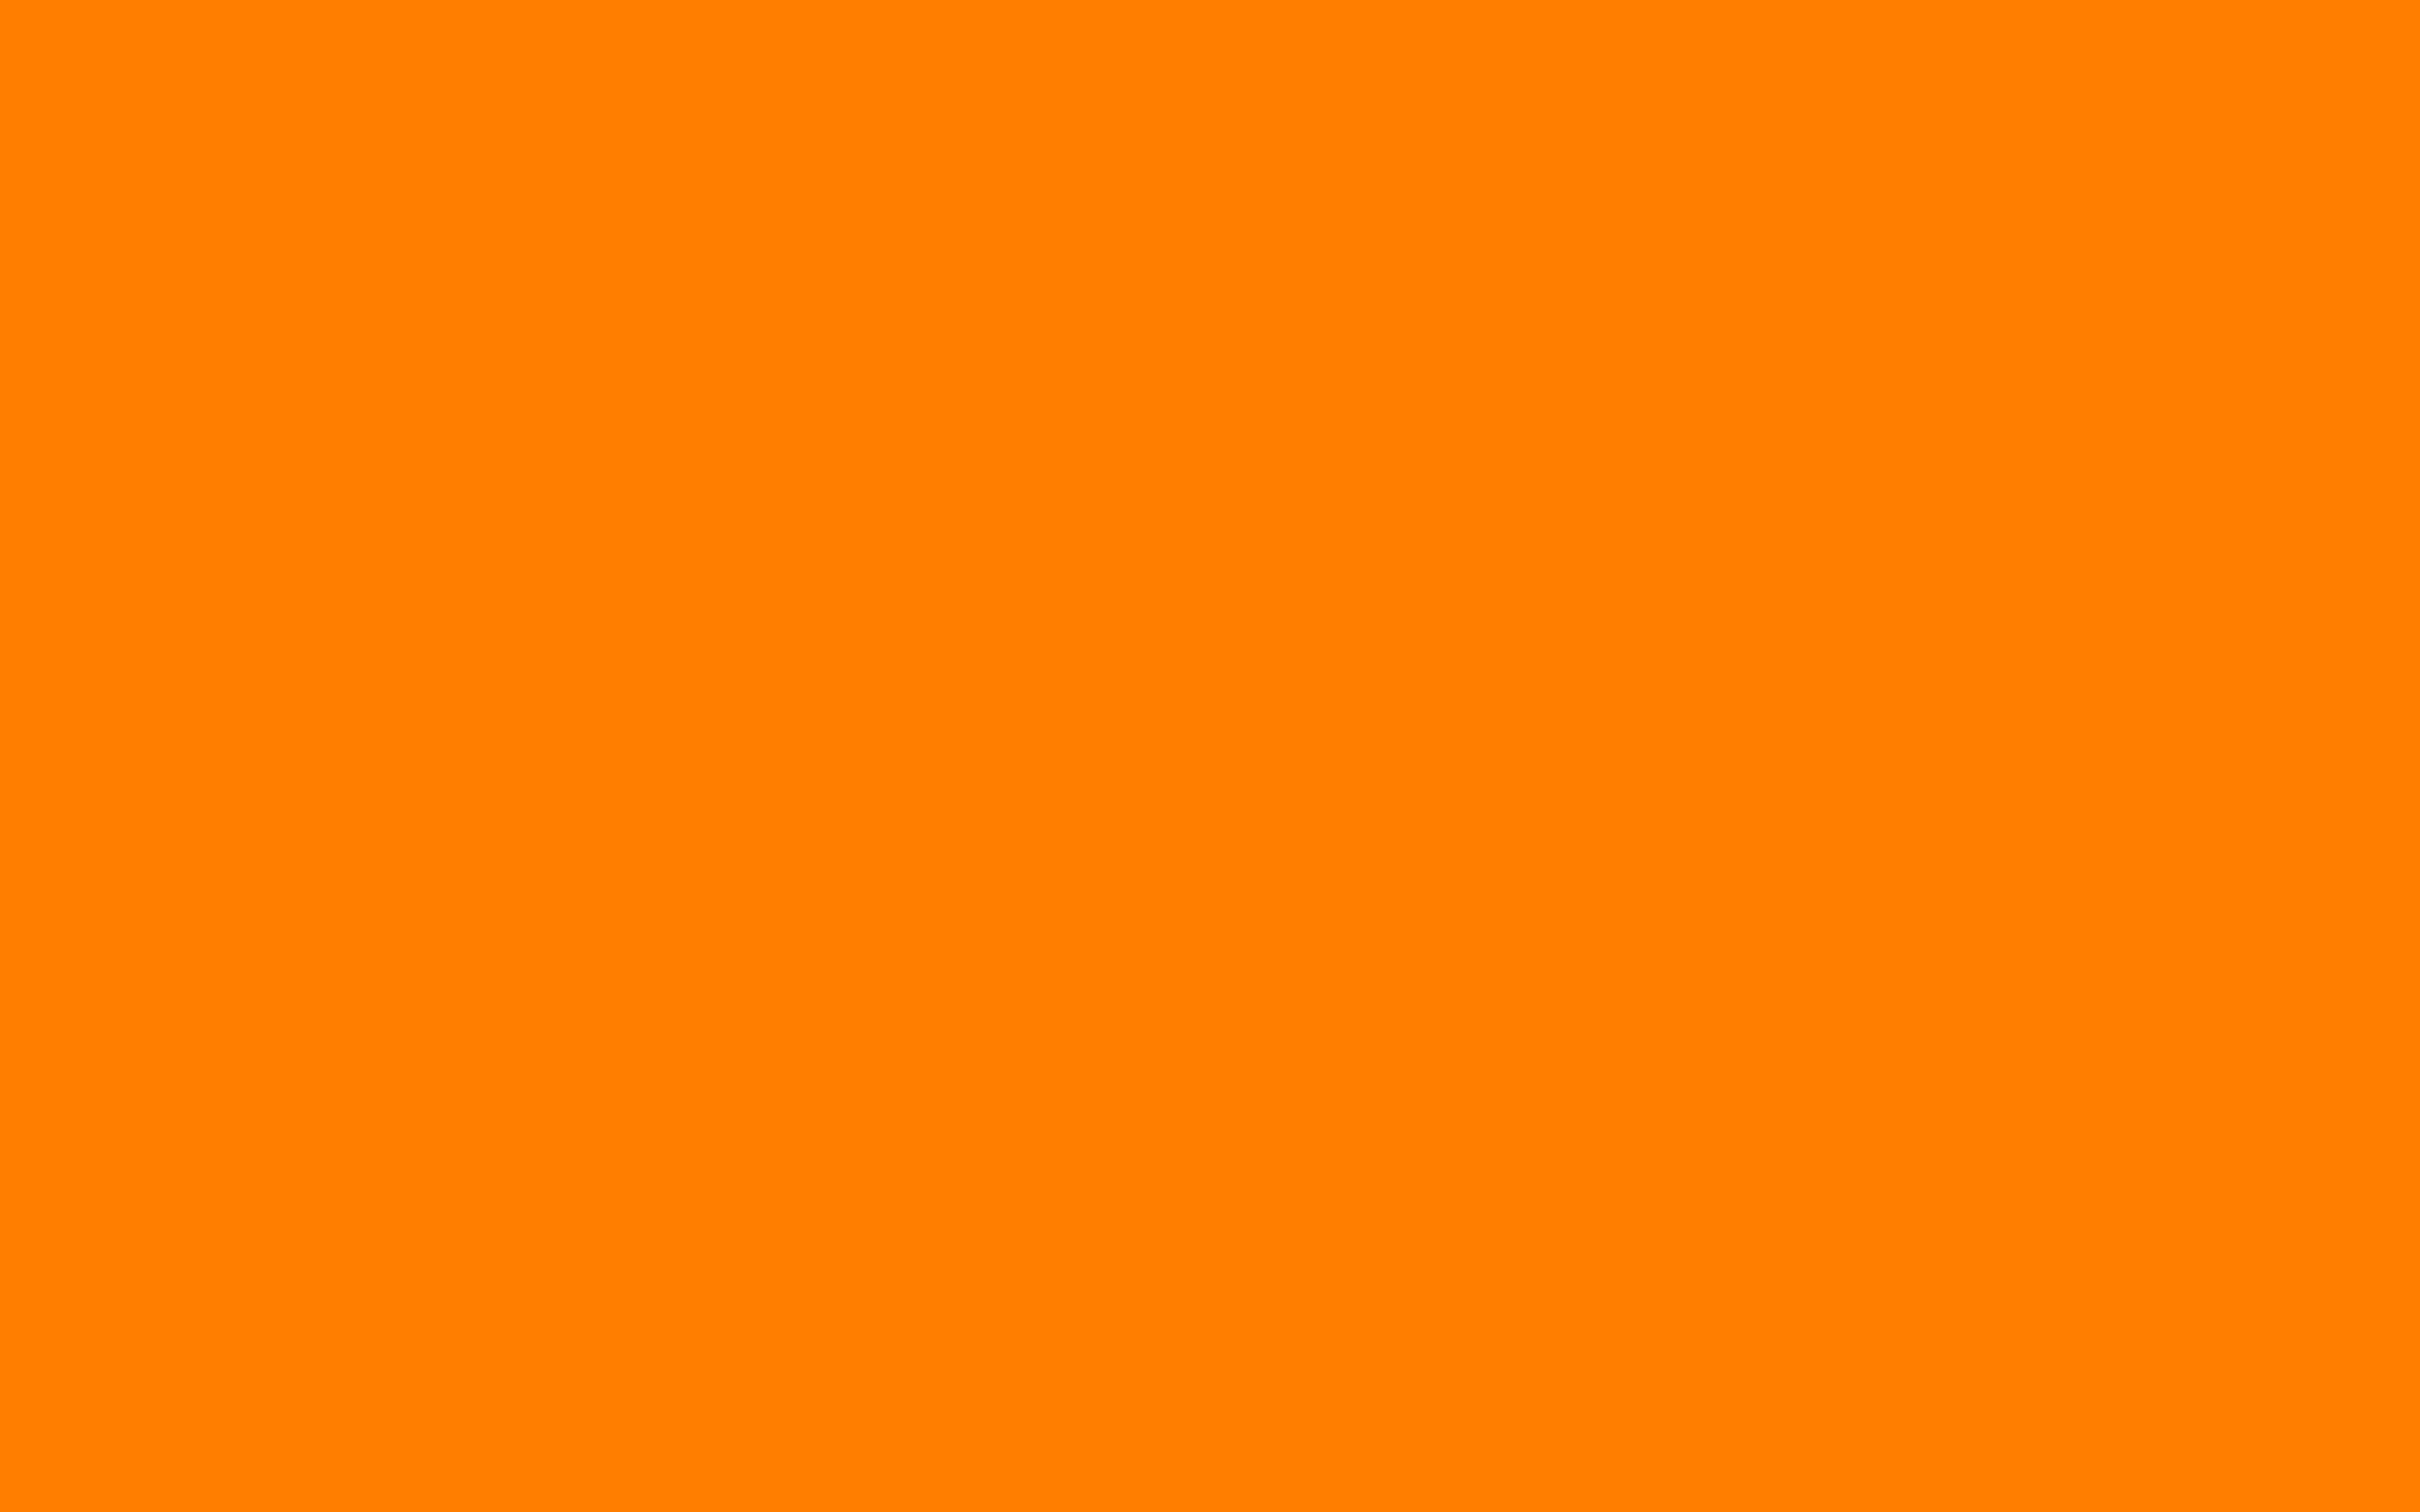 Orange solid color background, view and download the below background .